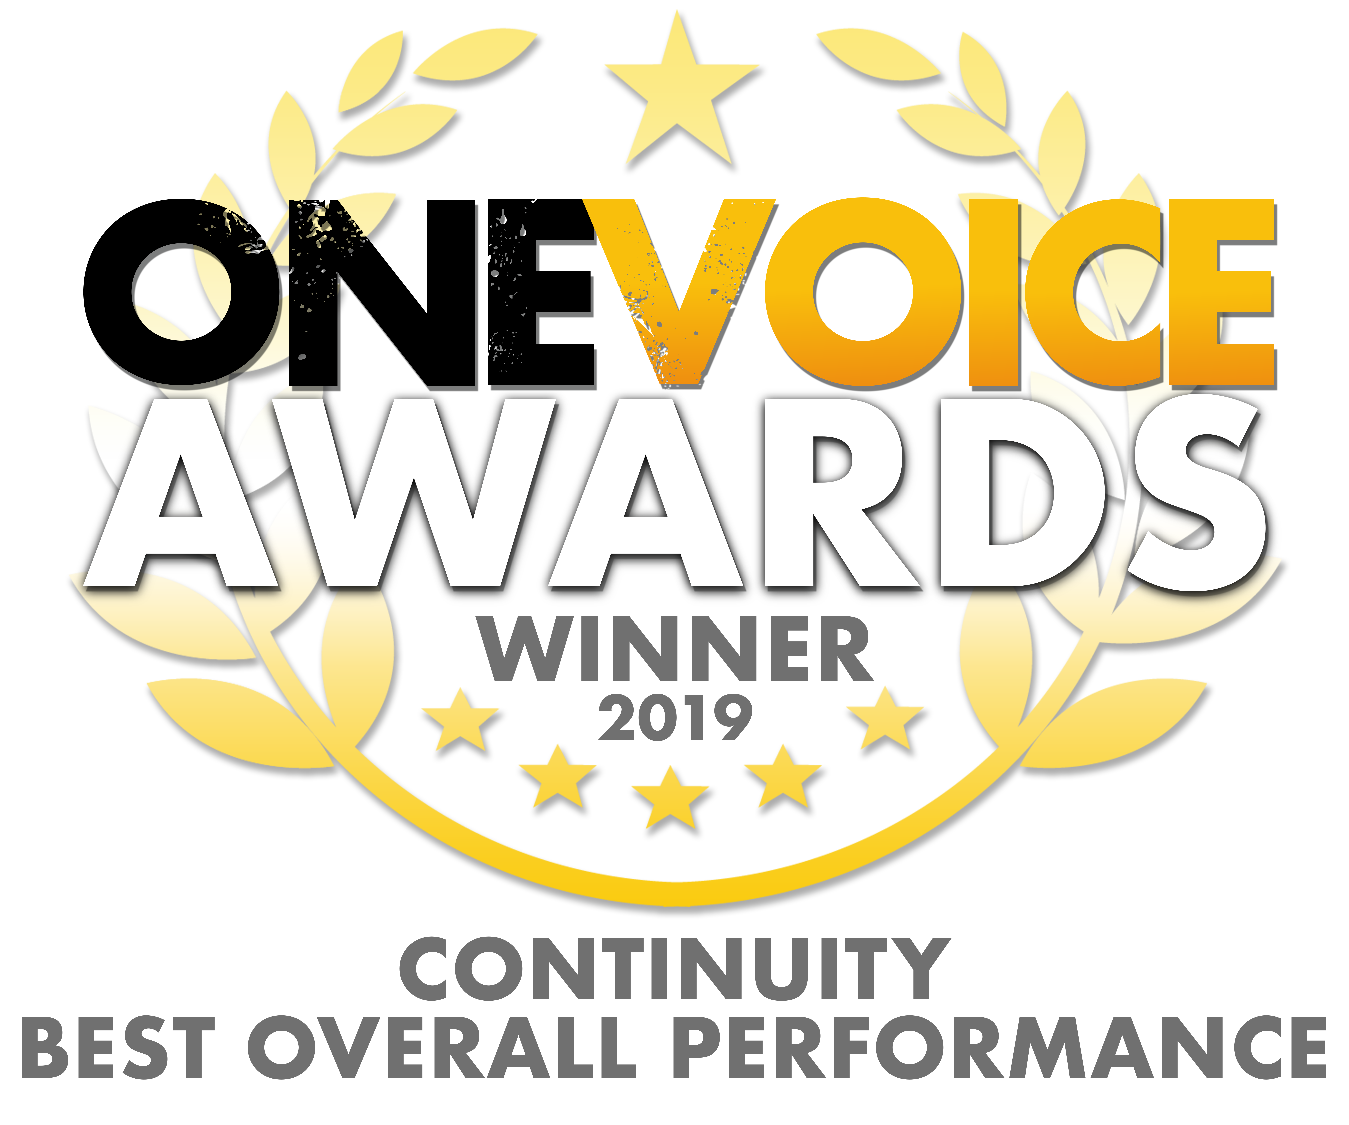 One Voice Award Winner 2019. Continuity Best Performance.